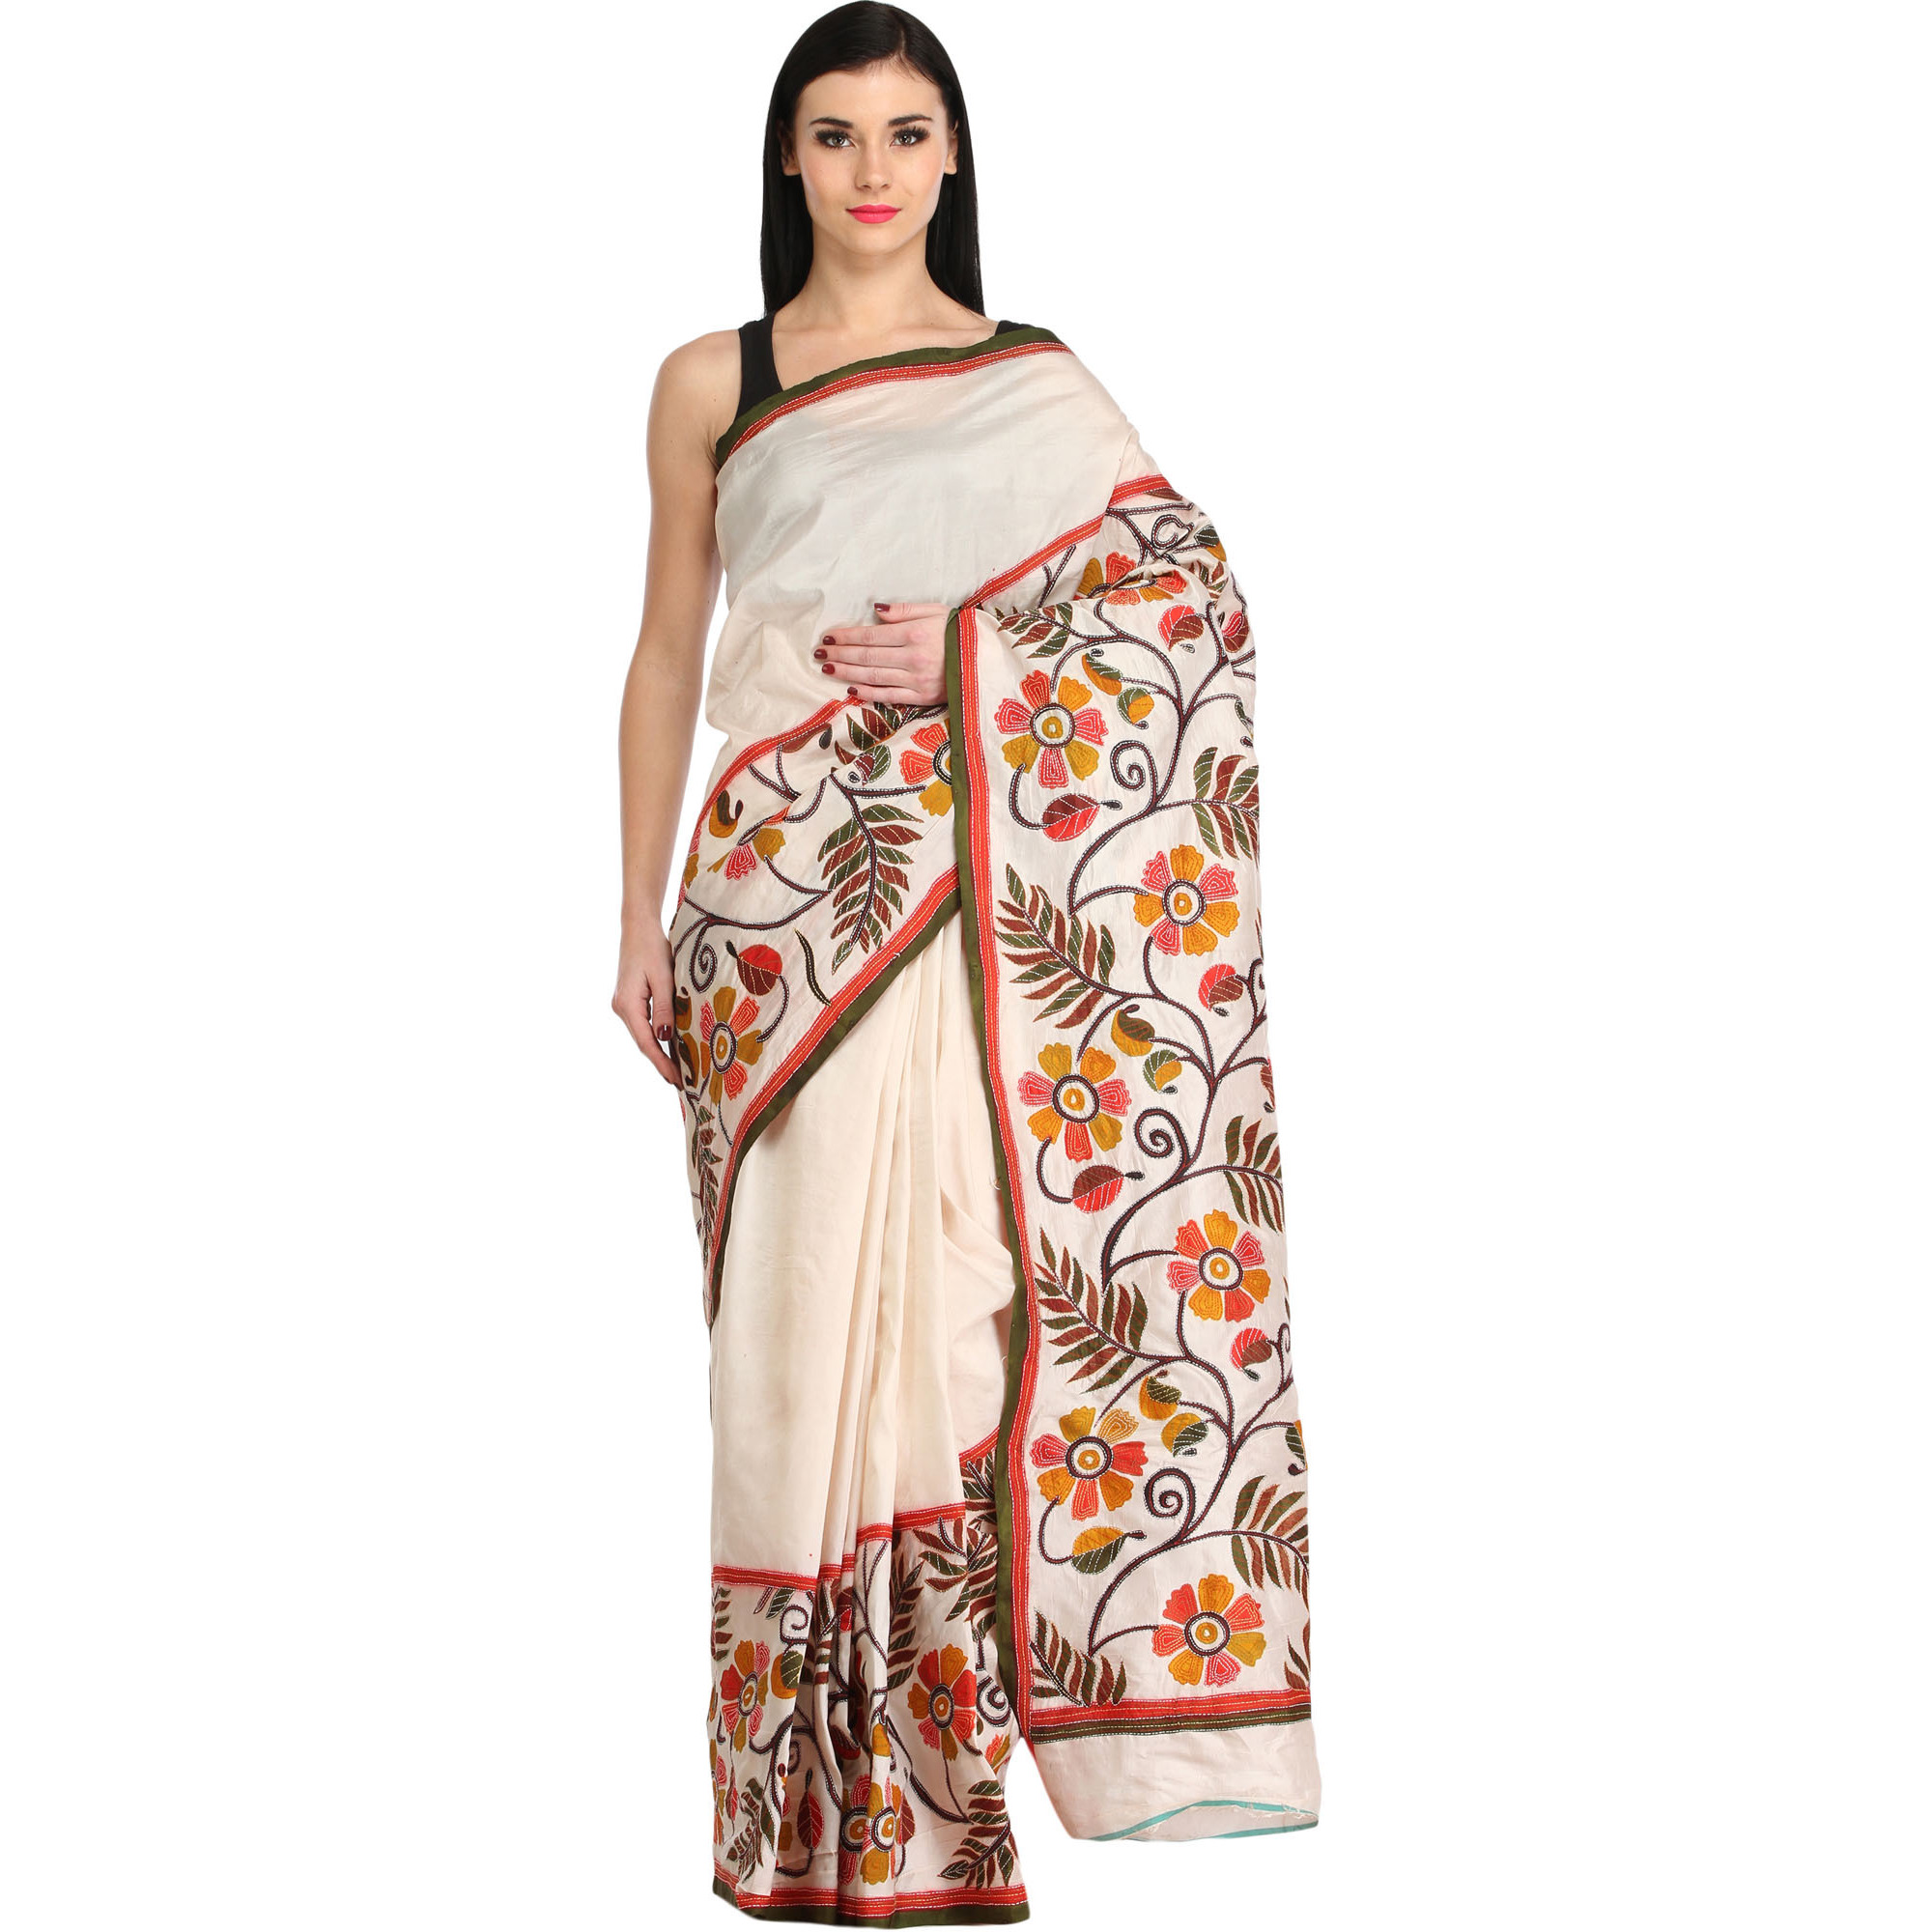 Ivory Sari from Kolkata with Foliage Print and Kantha Hand-Embroidery